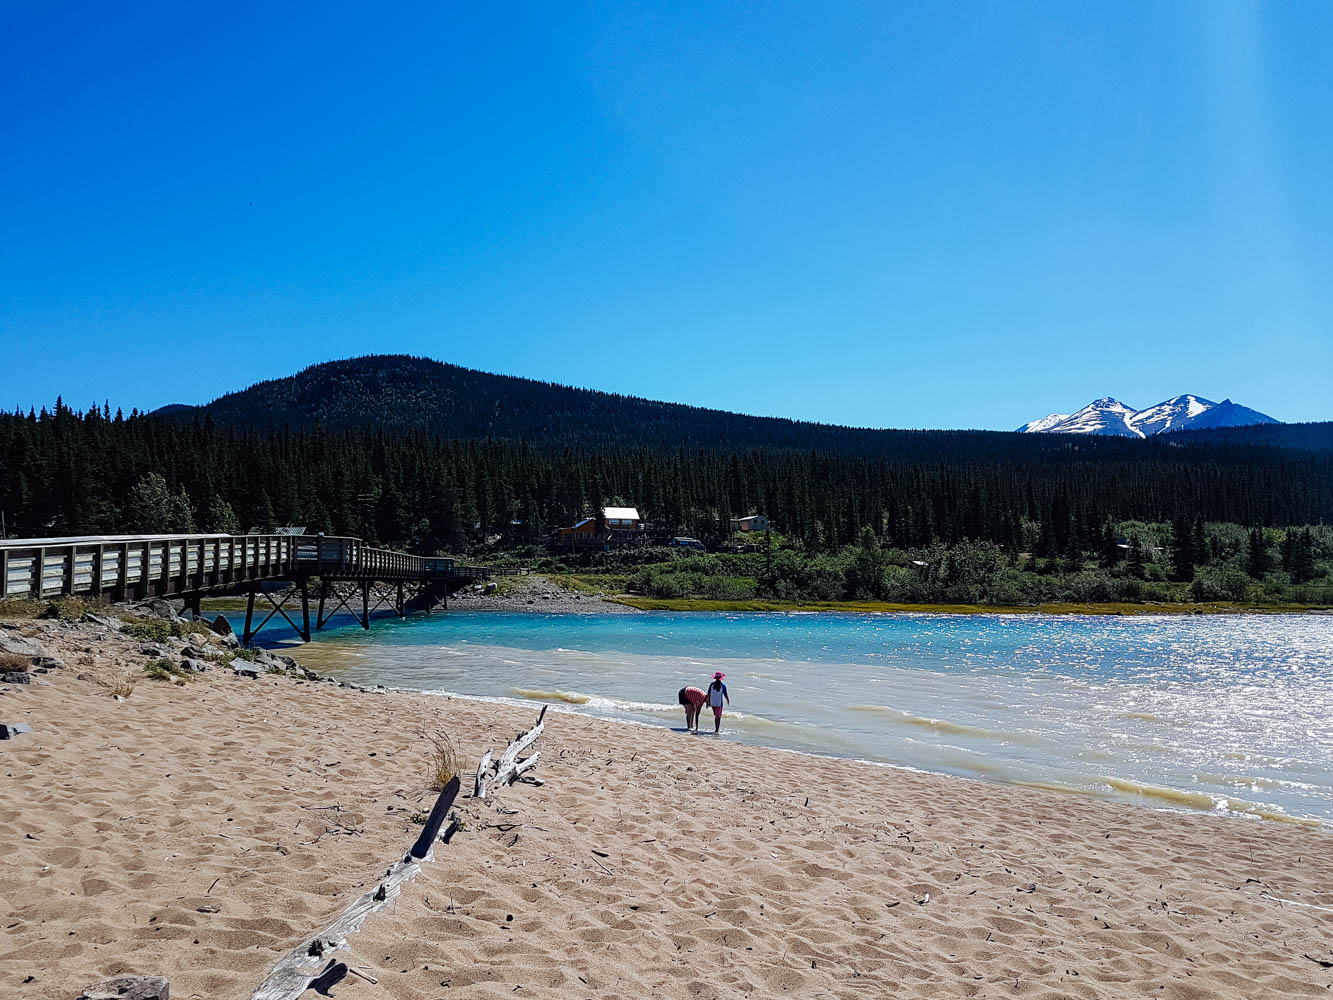 The beautiful beach in Carcross along Lake Bennett.